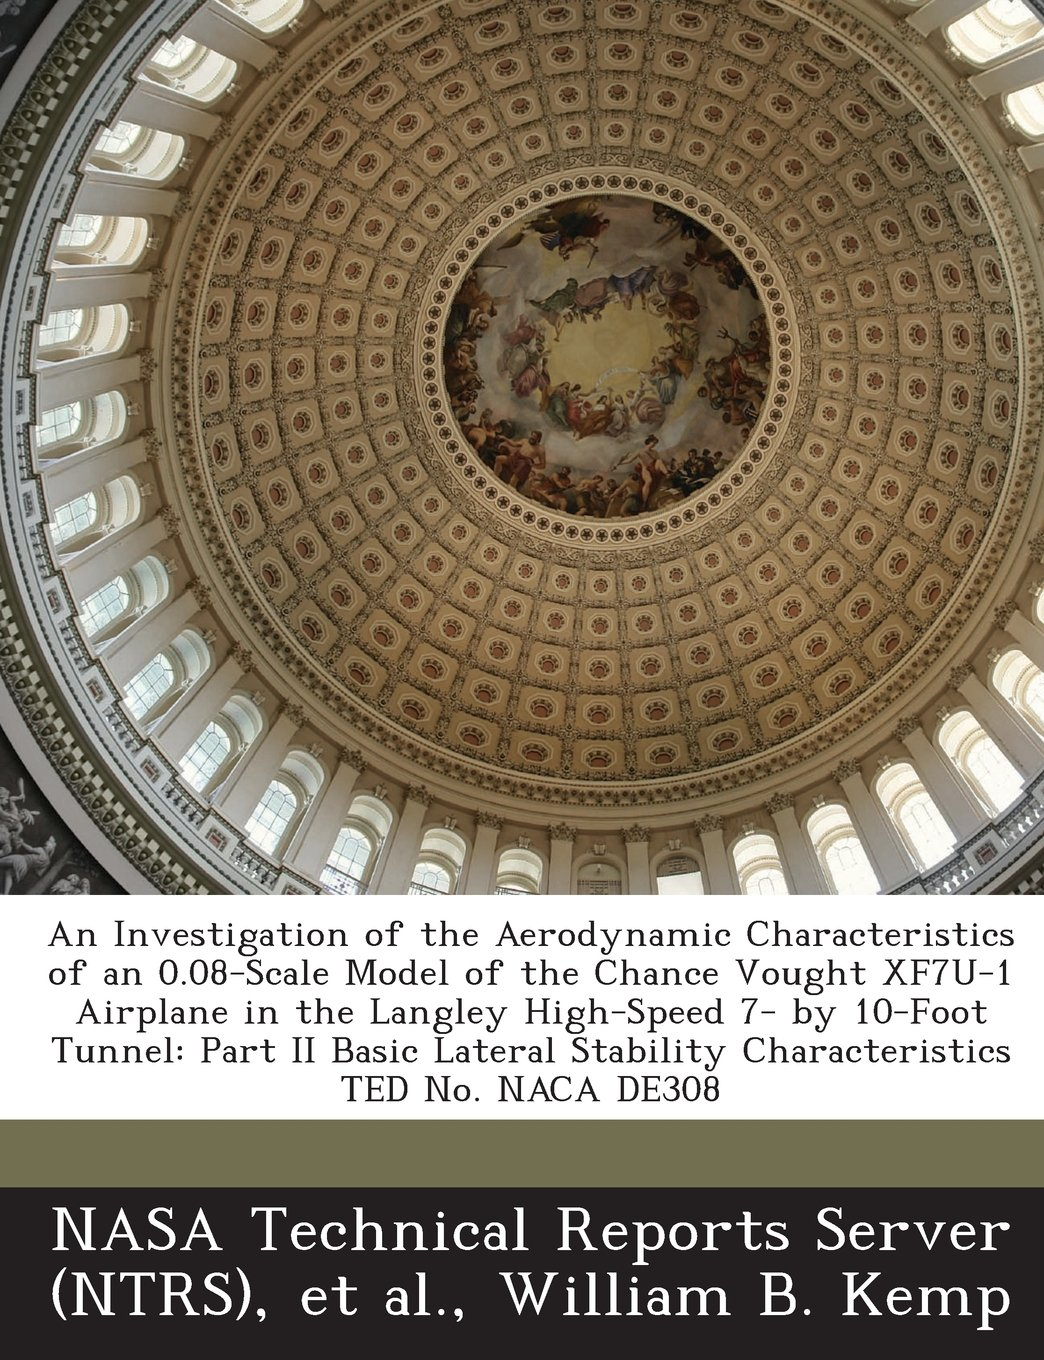 Download An Investigation of the Aerodynamic Characteristics of an 0.08-Scale Model of the Chance Vought XF7U-1 Airplane in the Langley High-Speed 7- by ... Stability Characteristics TED No. NACA DE308 pdf epub